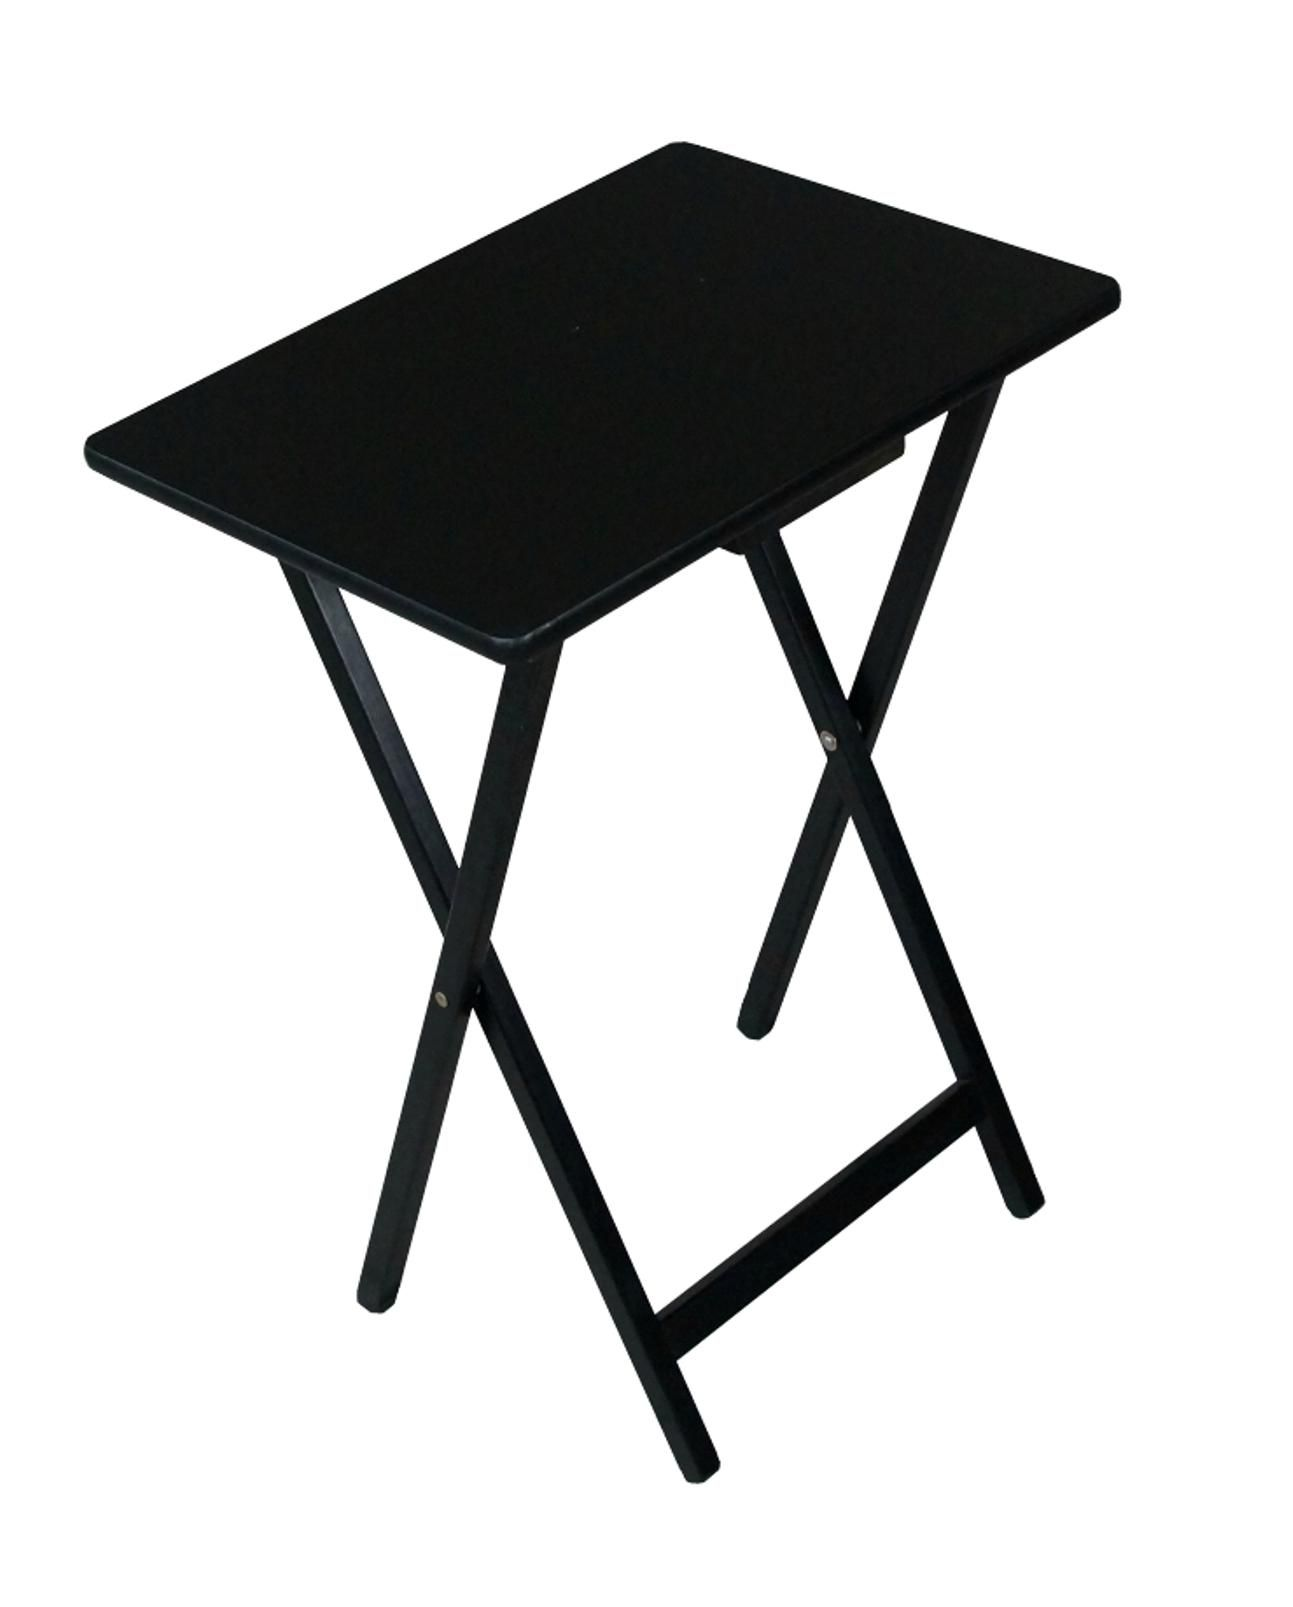 Folding Wooden Tv Tray Table Black Furniture Mattresses Small Space Furniture Folding Furniture Wooden Tv Trays Tv Trays Tv Tray Table